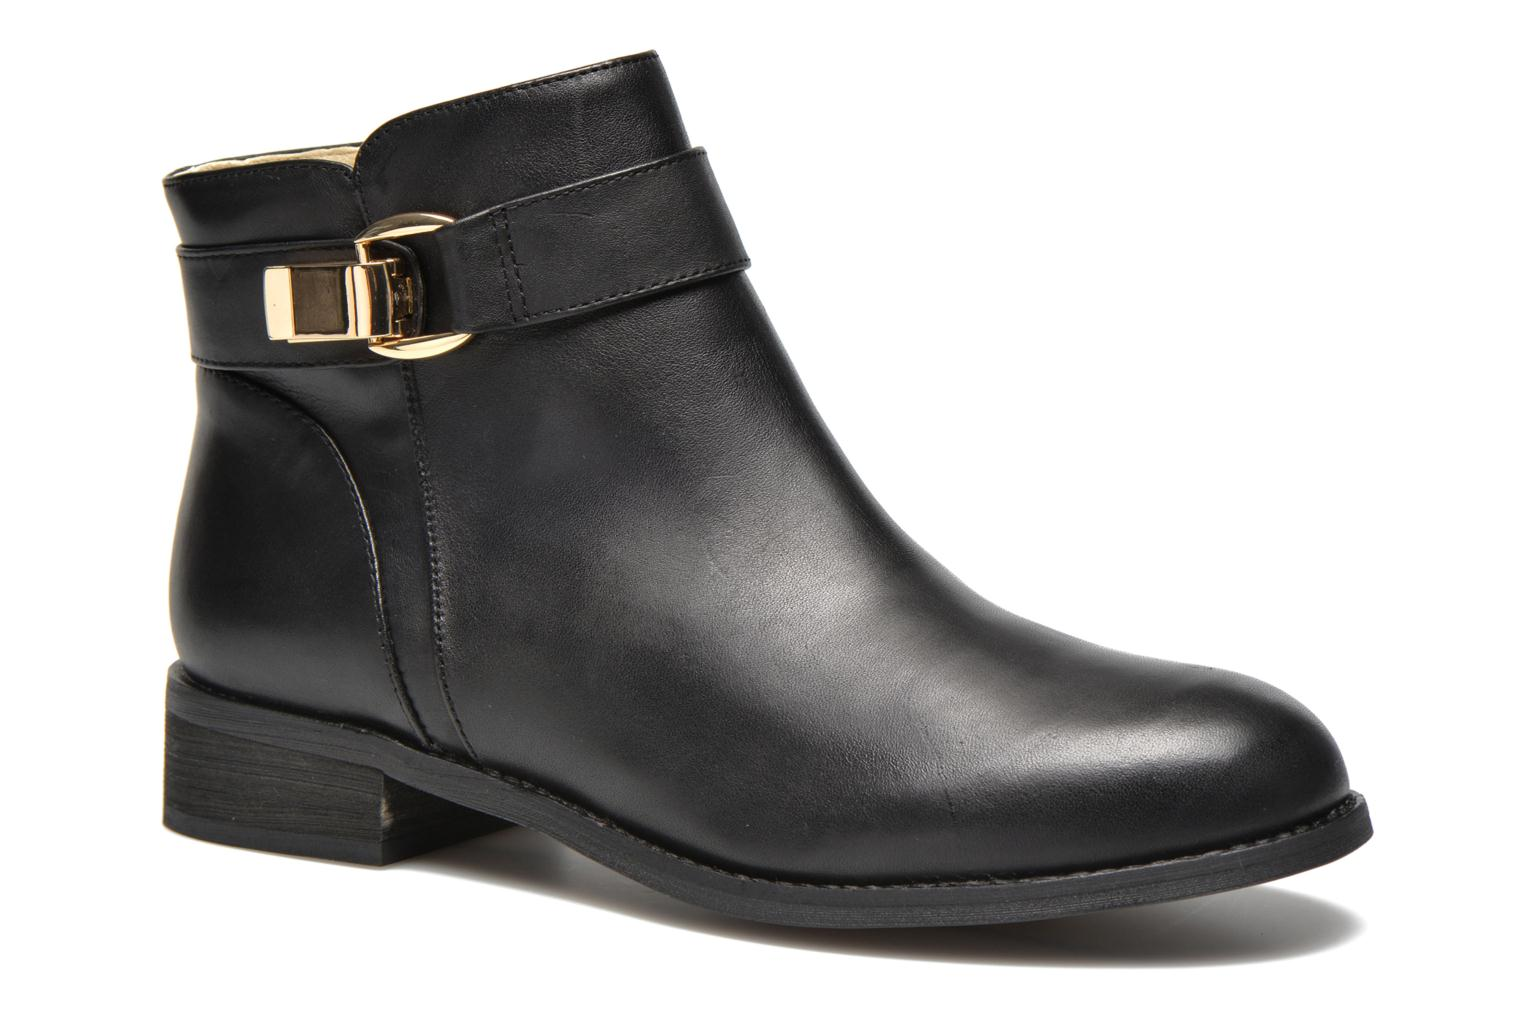 Marques Chaussure femme Buffalo femme Befot Silk Leather Black 851